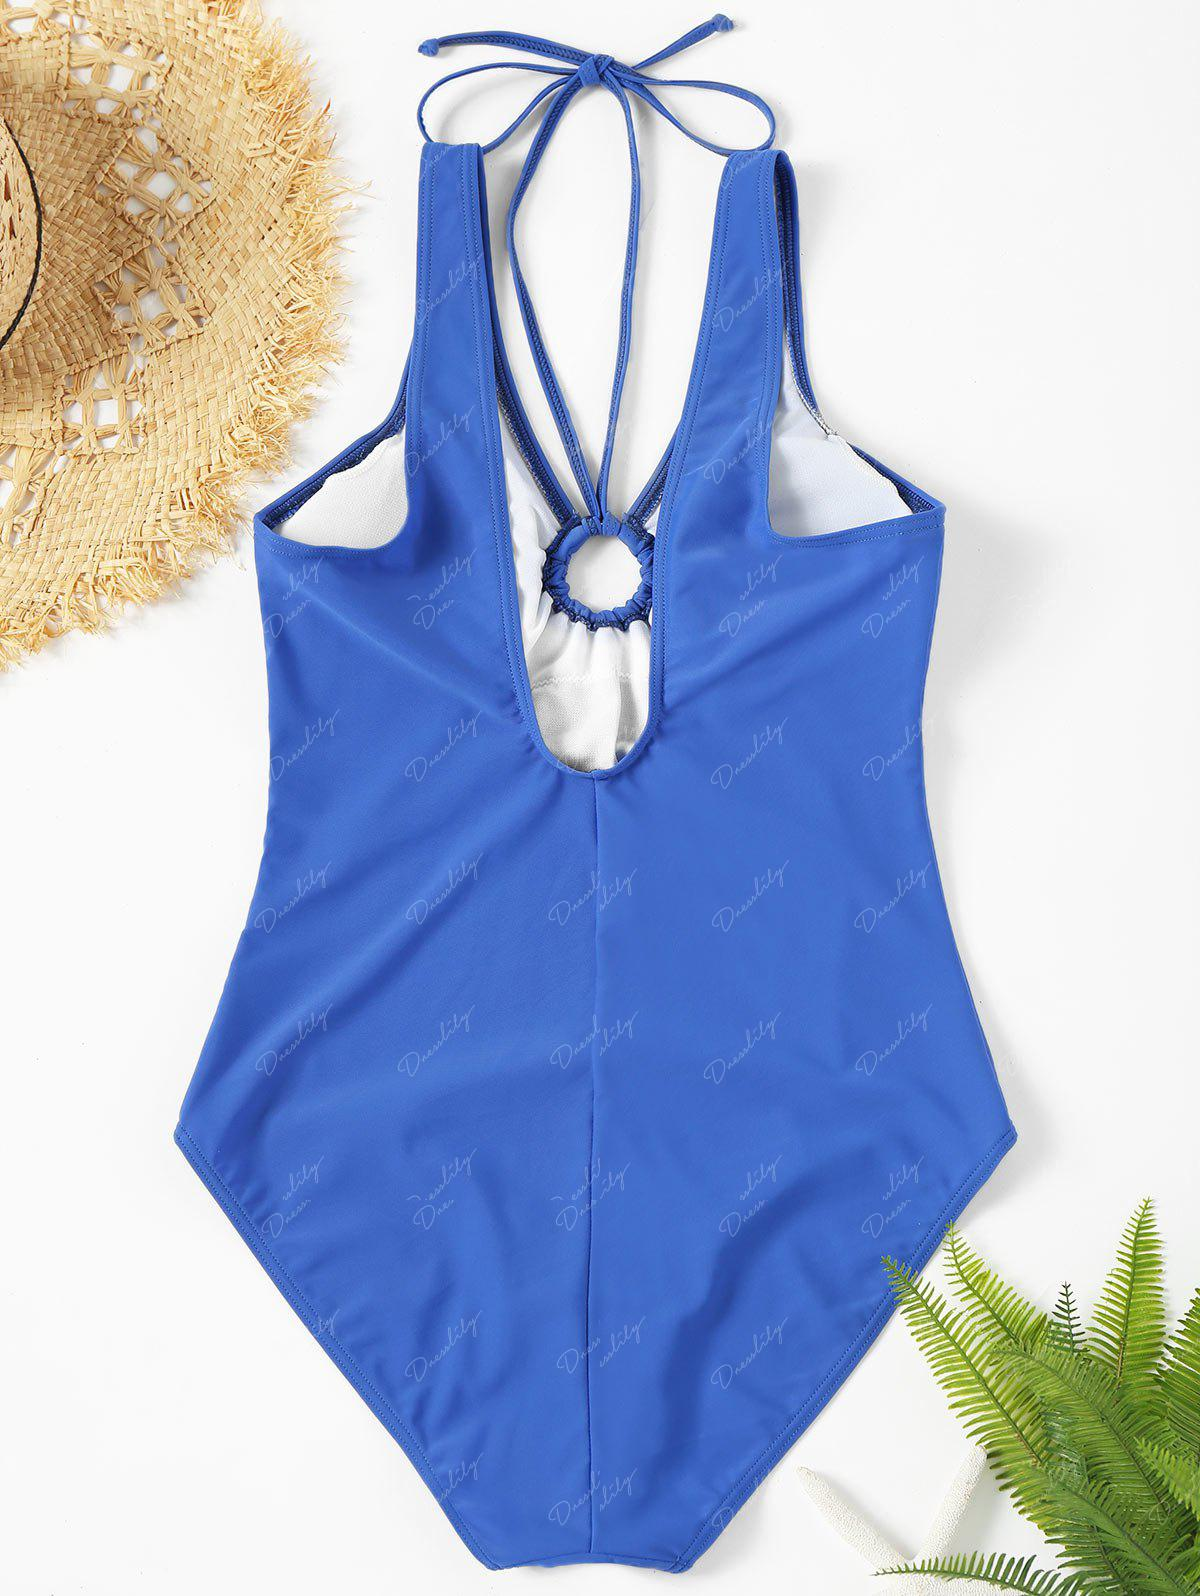 Backless Plunge Neck One Piece Swimsuit - BLUE S